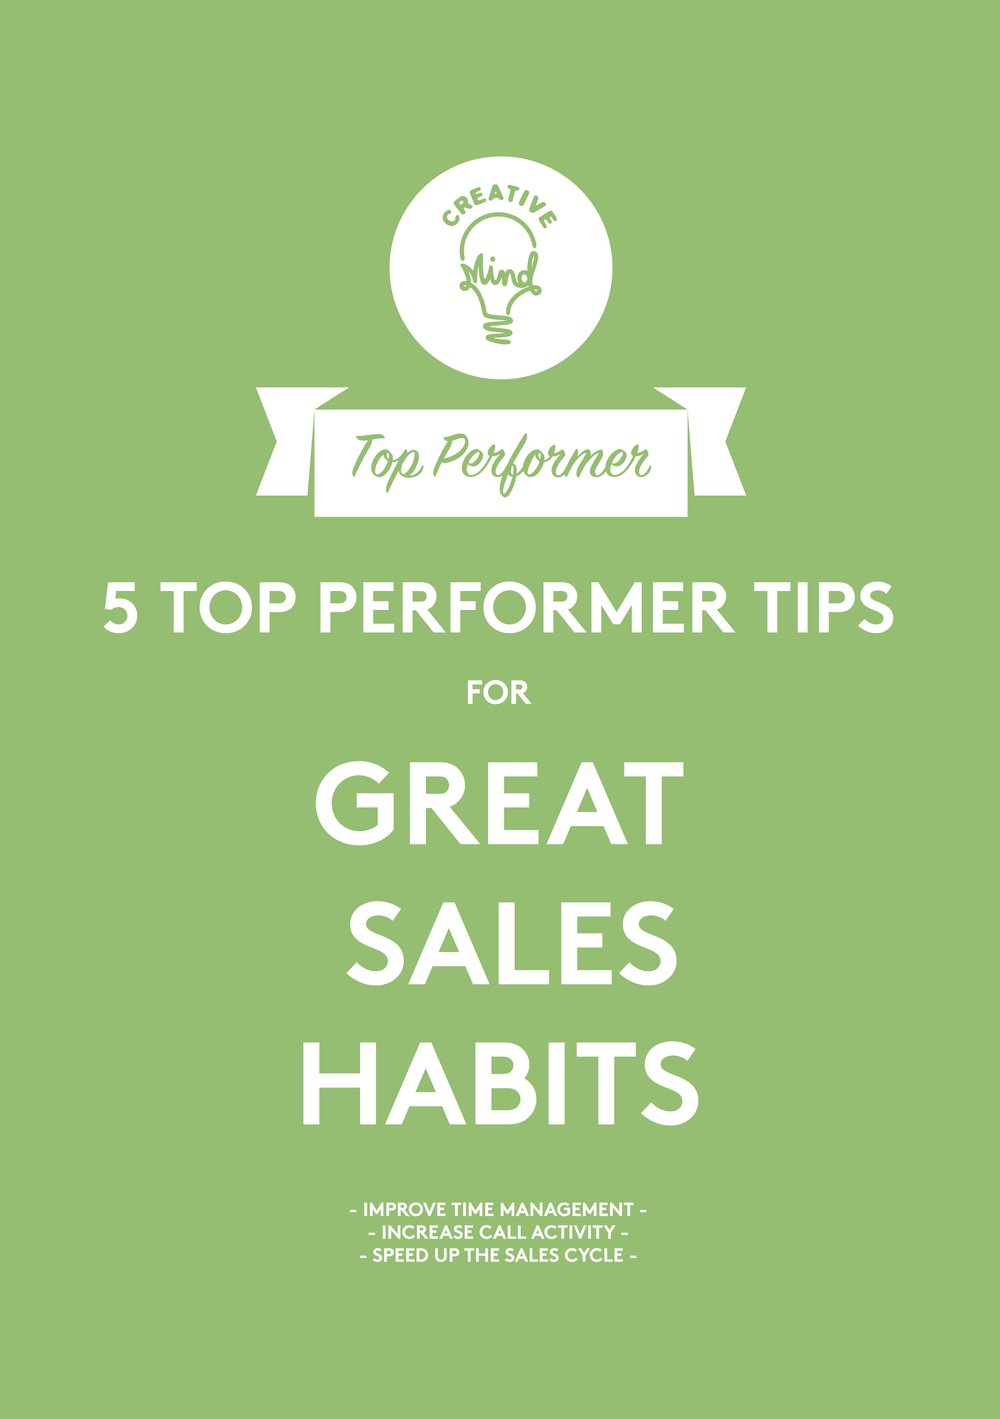 FREE DOWNLOAD:Great sales habits - Improve time managementIncrease call activitySpeed up the sales cycle